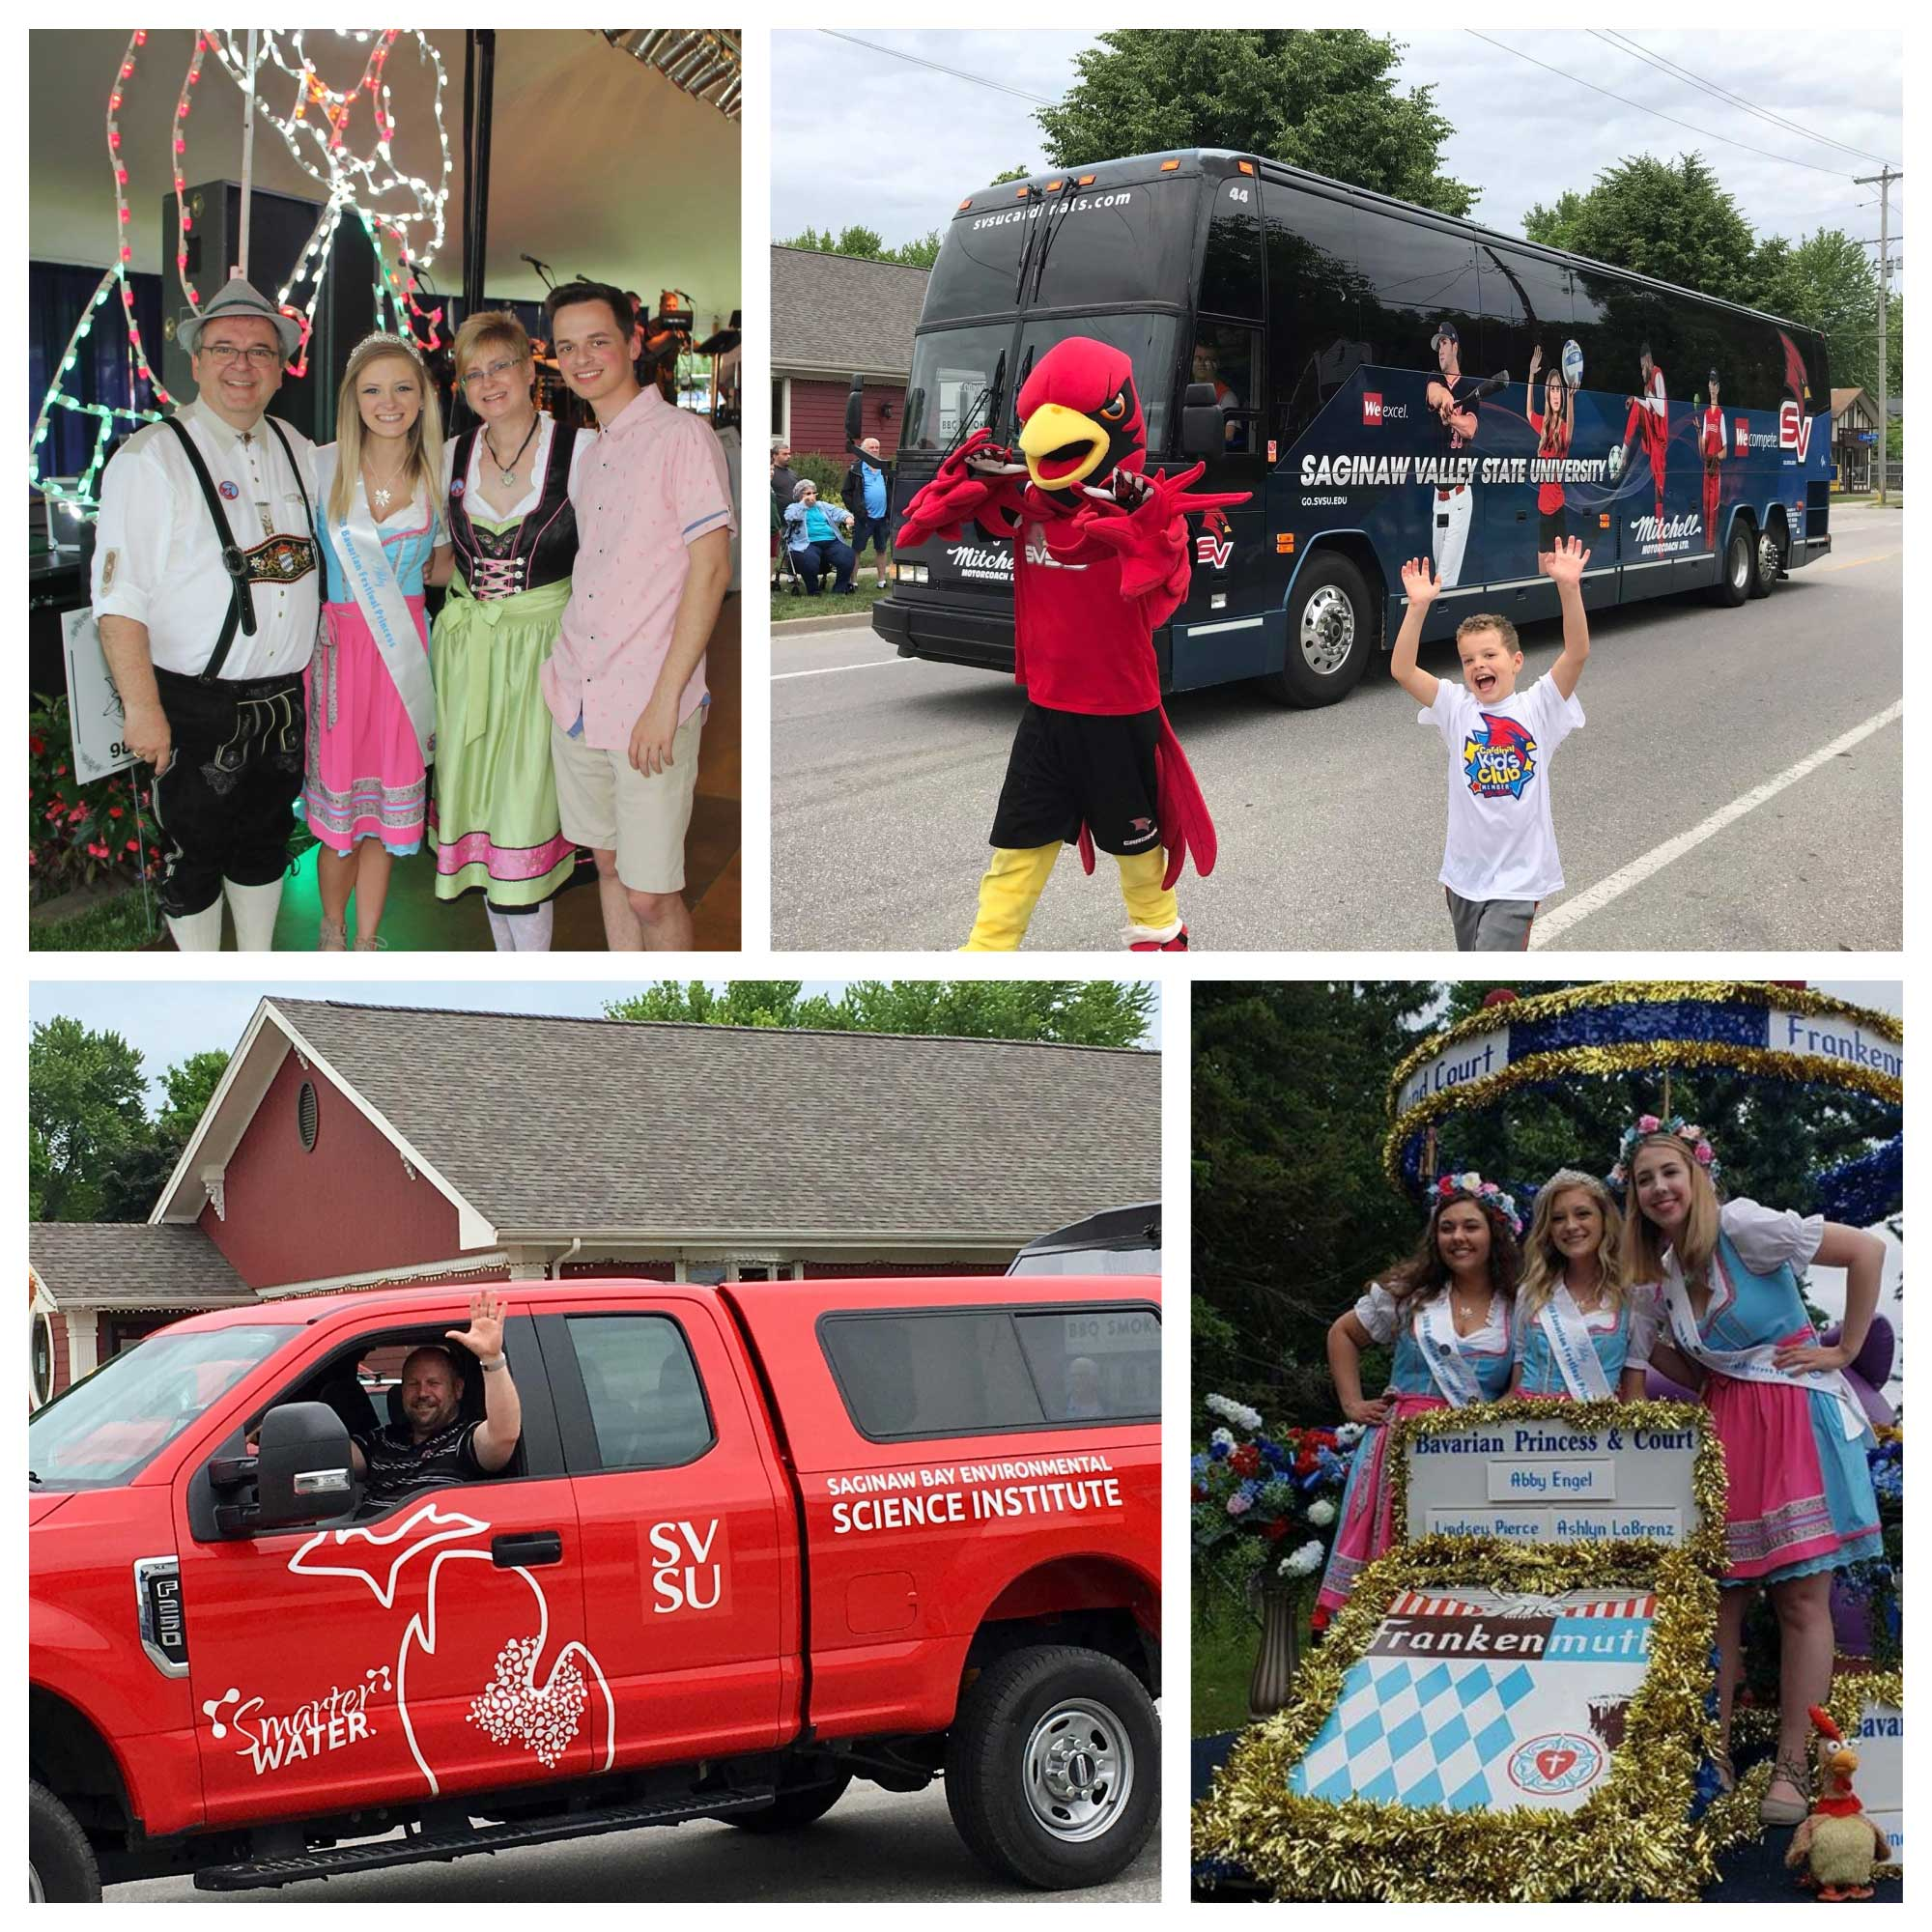 A collage of photos from the 2018 Bavarian Festival, including Coop in parade, athletic bus, SBESI truck, and Abby Engel, who graduated in May with a bachelor's degree in communication, even served as Bavarian Festival Princess